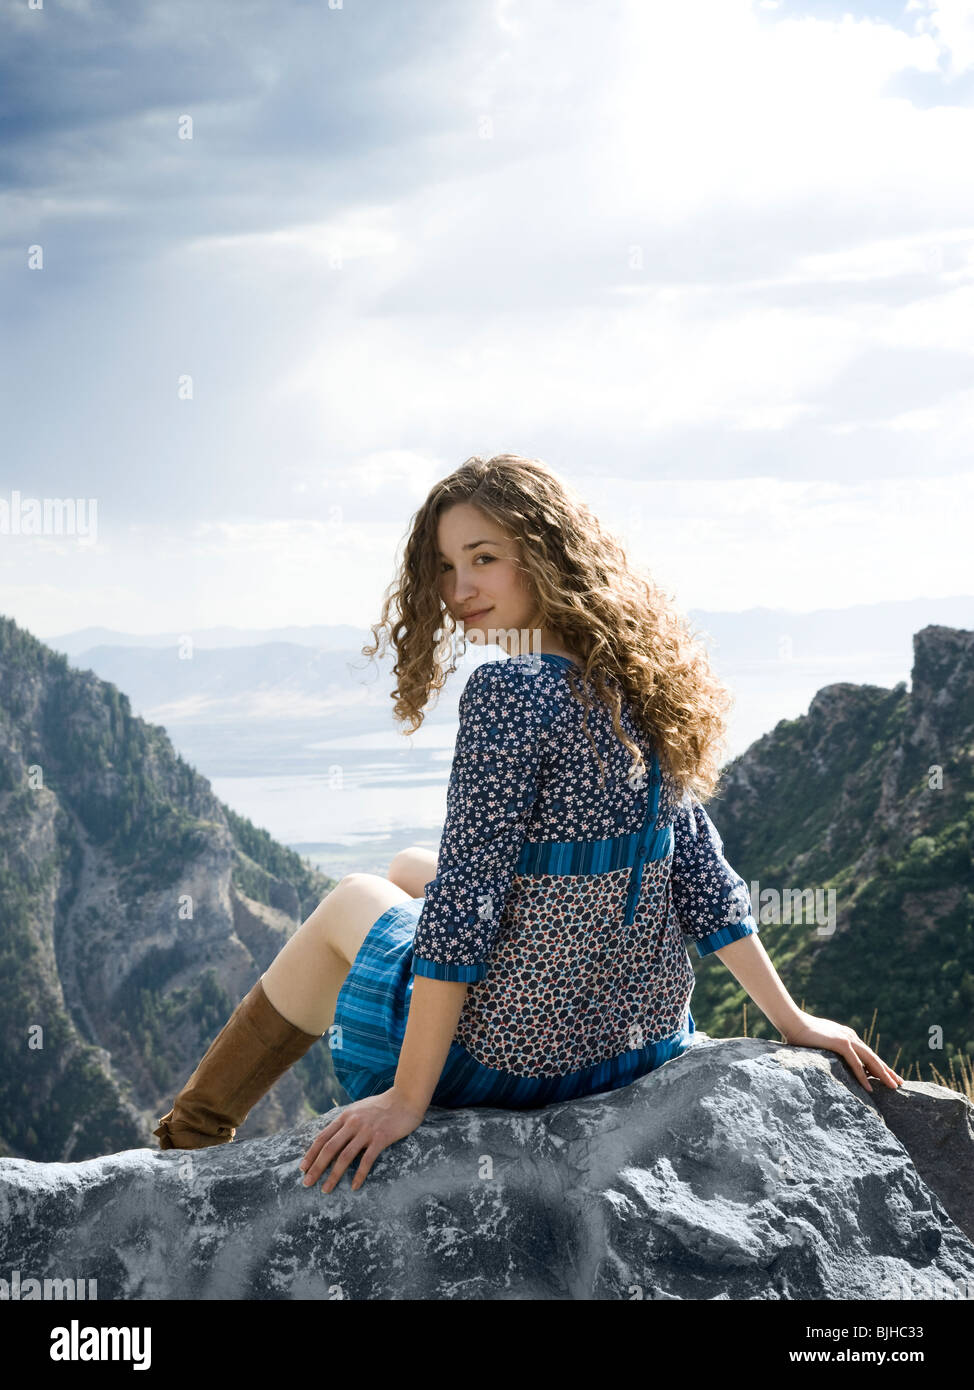 woman in a floral print dress on a mountain top sitting on a rock - Stock Image